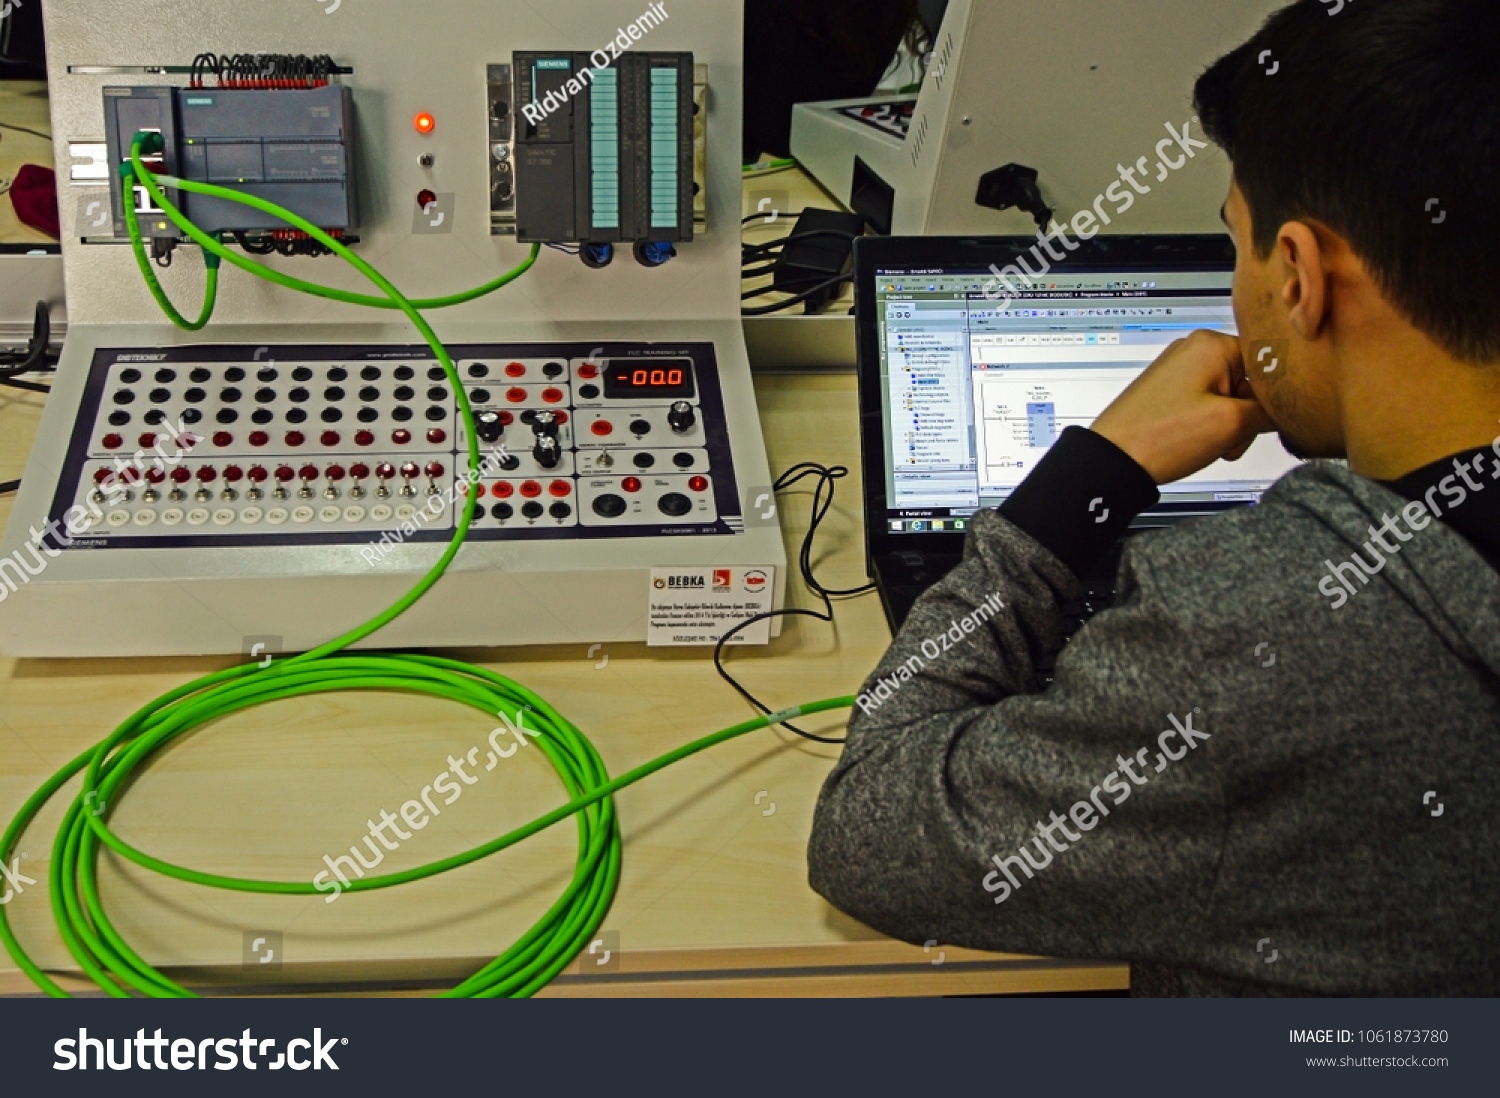 Bilecik Turkey March 22 2018 Operator Stock Photo Edit Now Electrical Wiring Course An Student Is Taking Plc